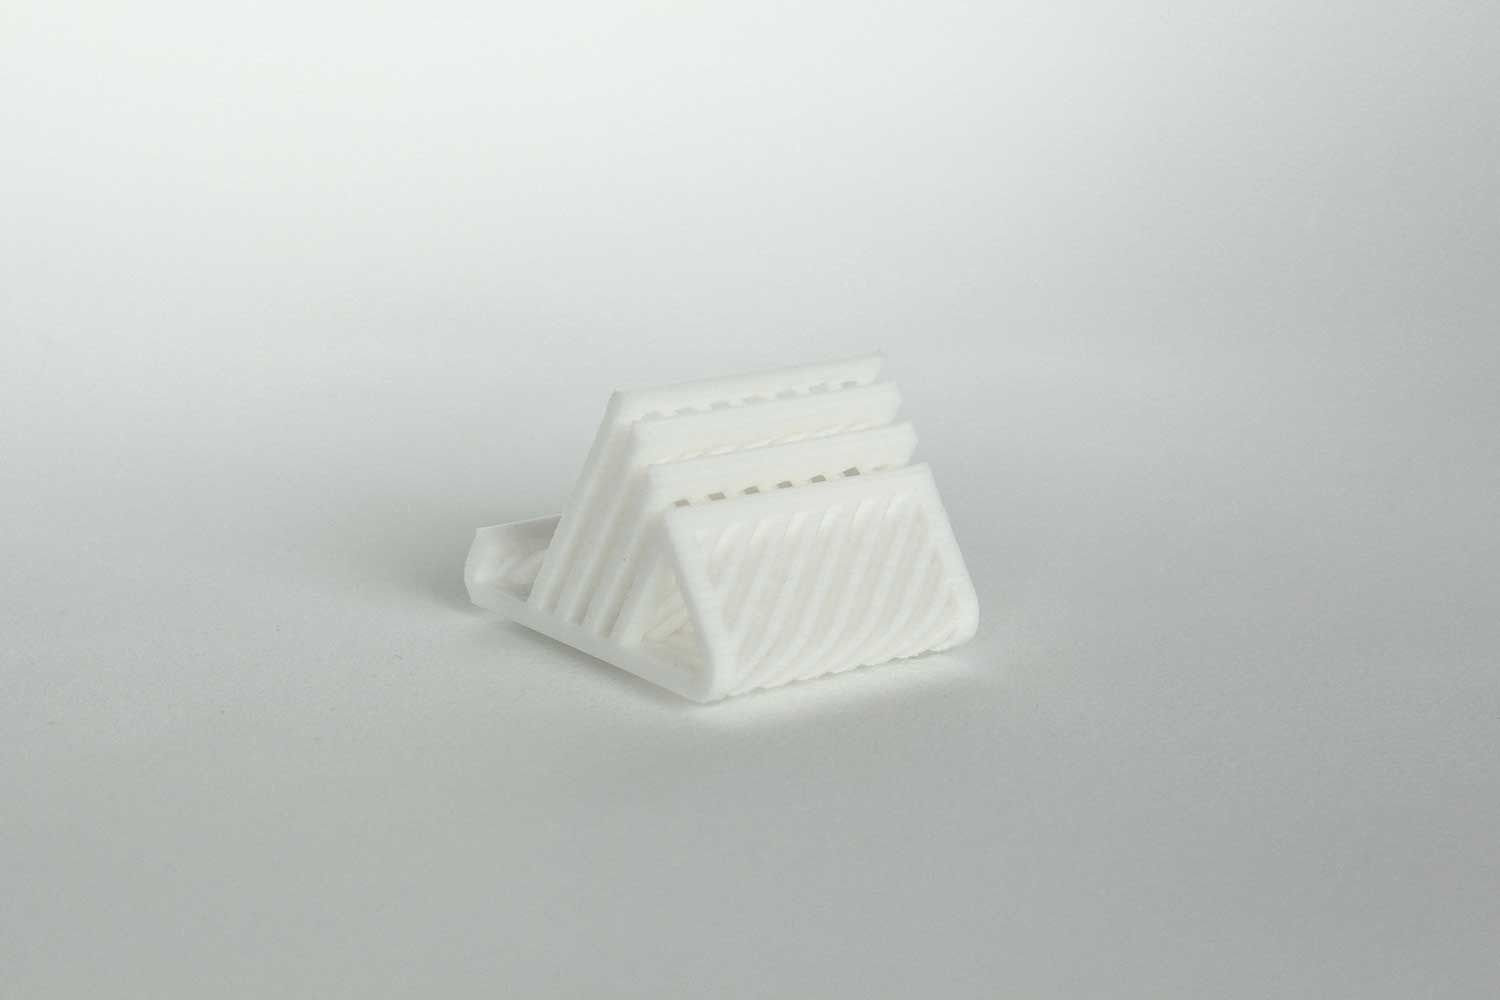 015c business card holder tiered 3d print model 2 015c business card holder tiered angular pattern 3d model stl colourmoves